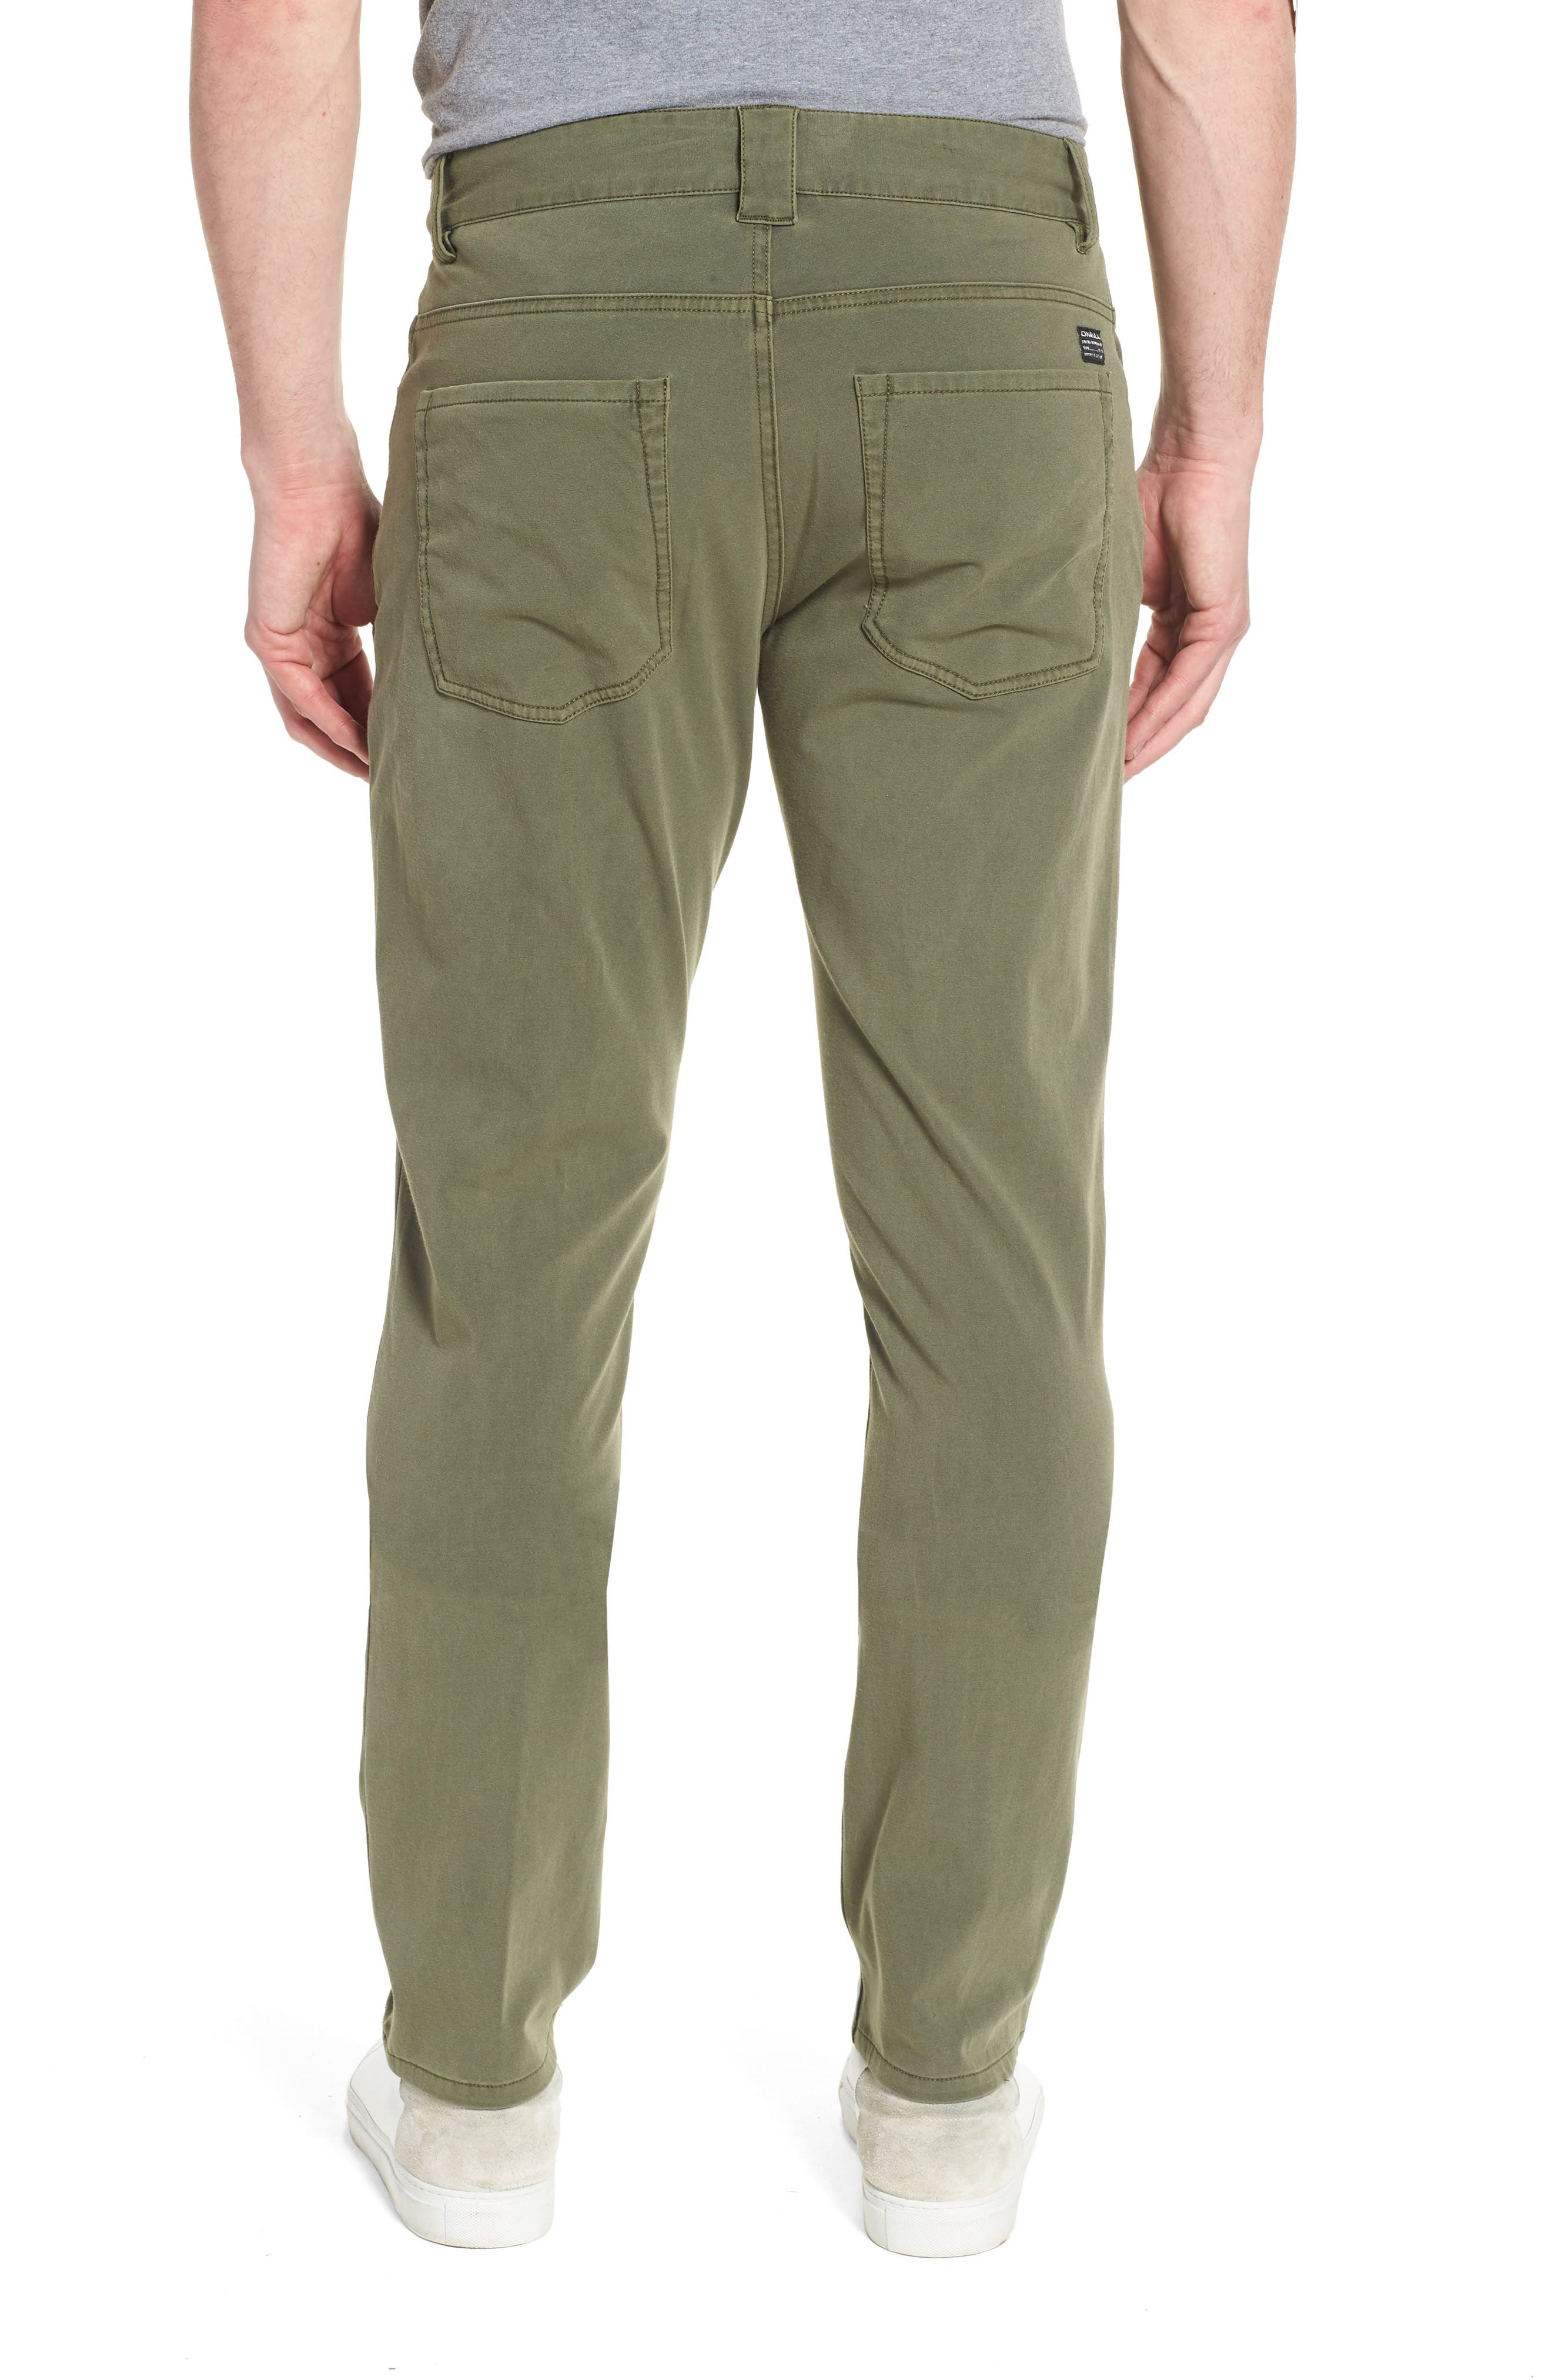 Venture Slim Fit Hybrid Pants,                             Alternate thumbnail 2, color,                             Army